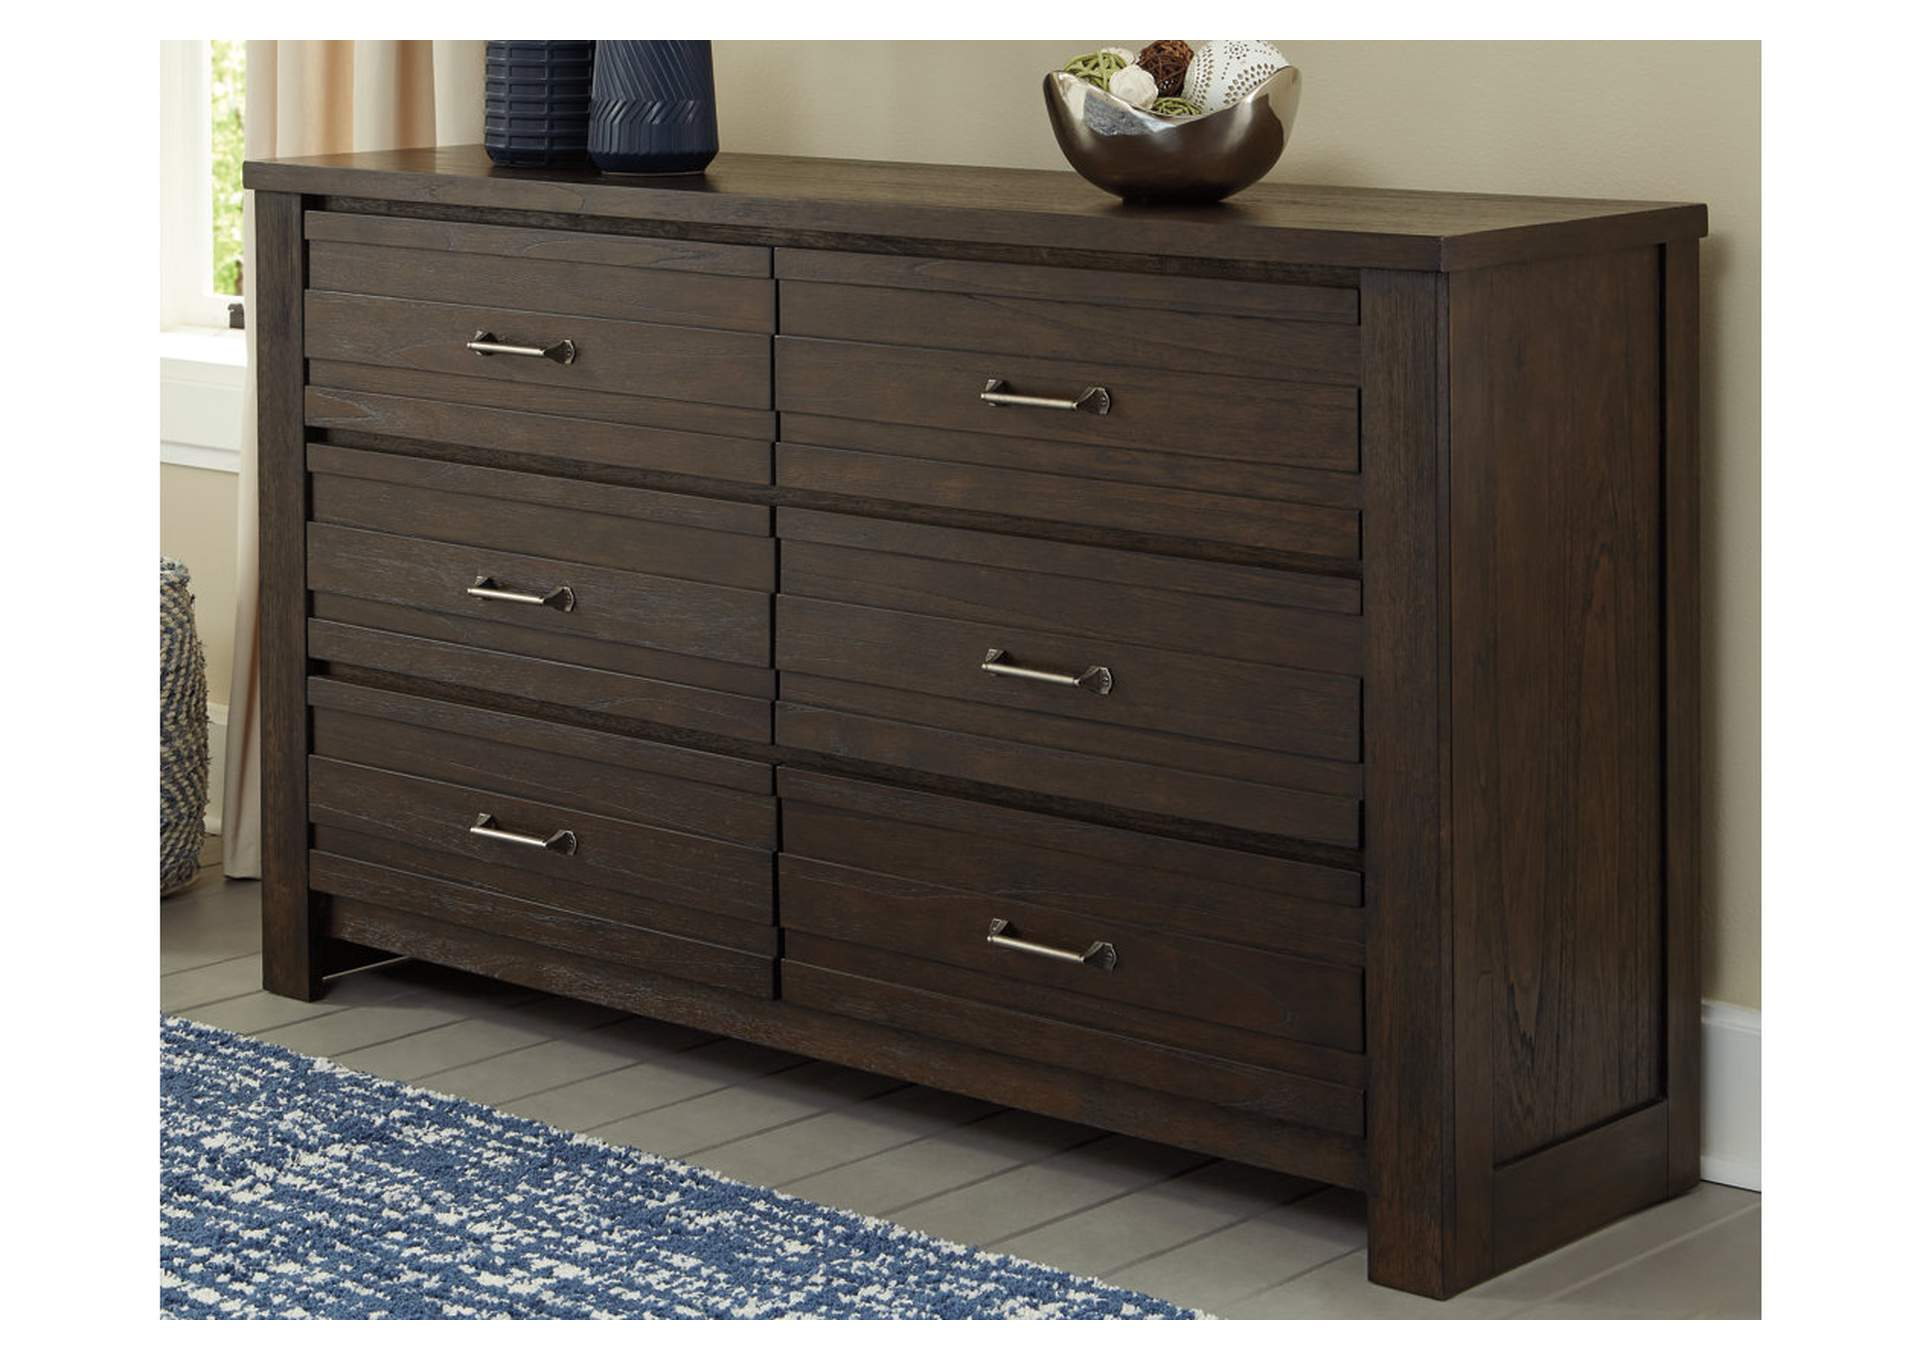 Darbry Brown Dresser,Signature Design By Ashley